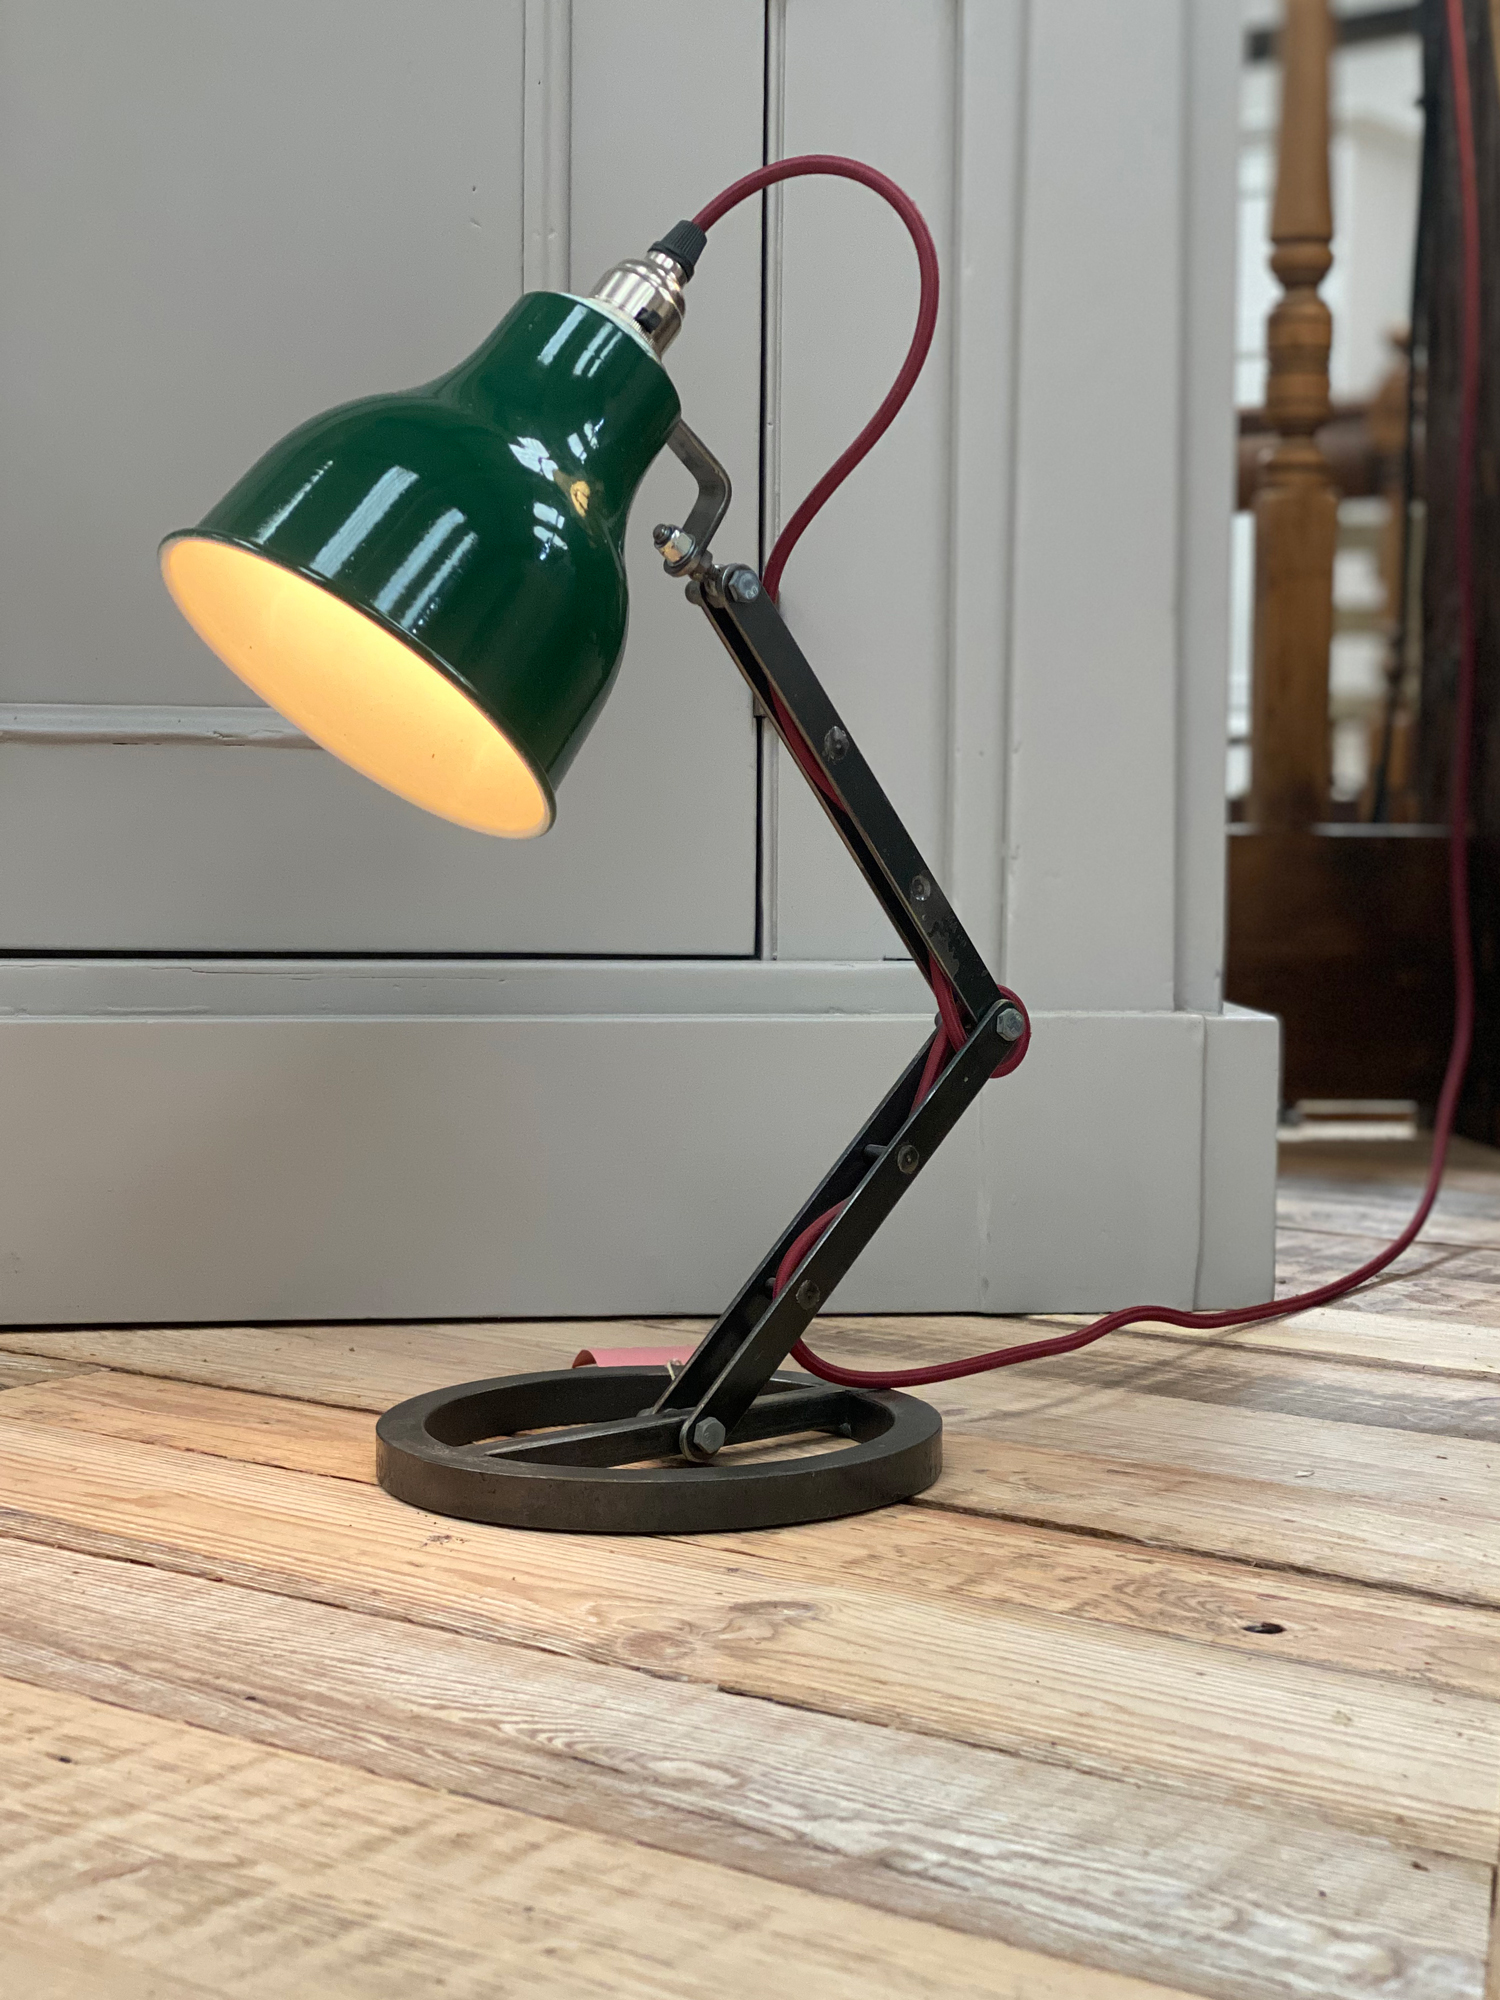 Industrial table lamp with green shade and red textile cord